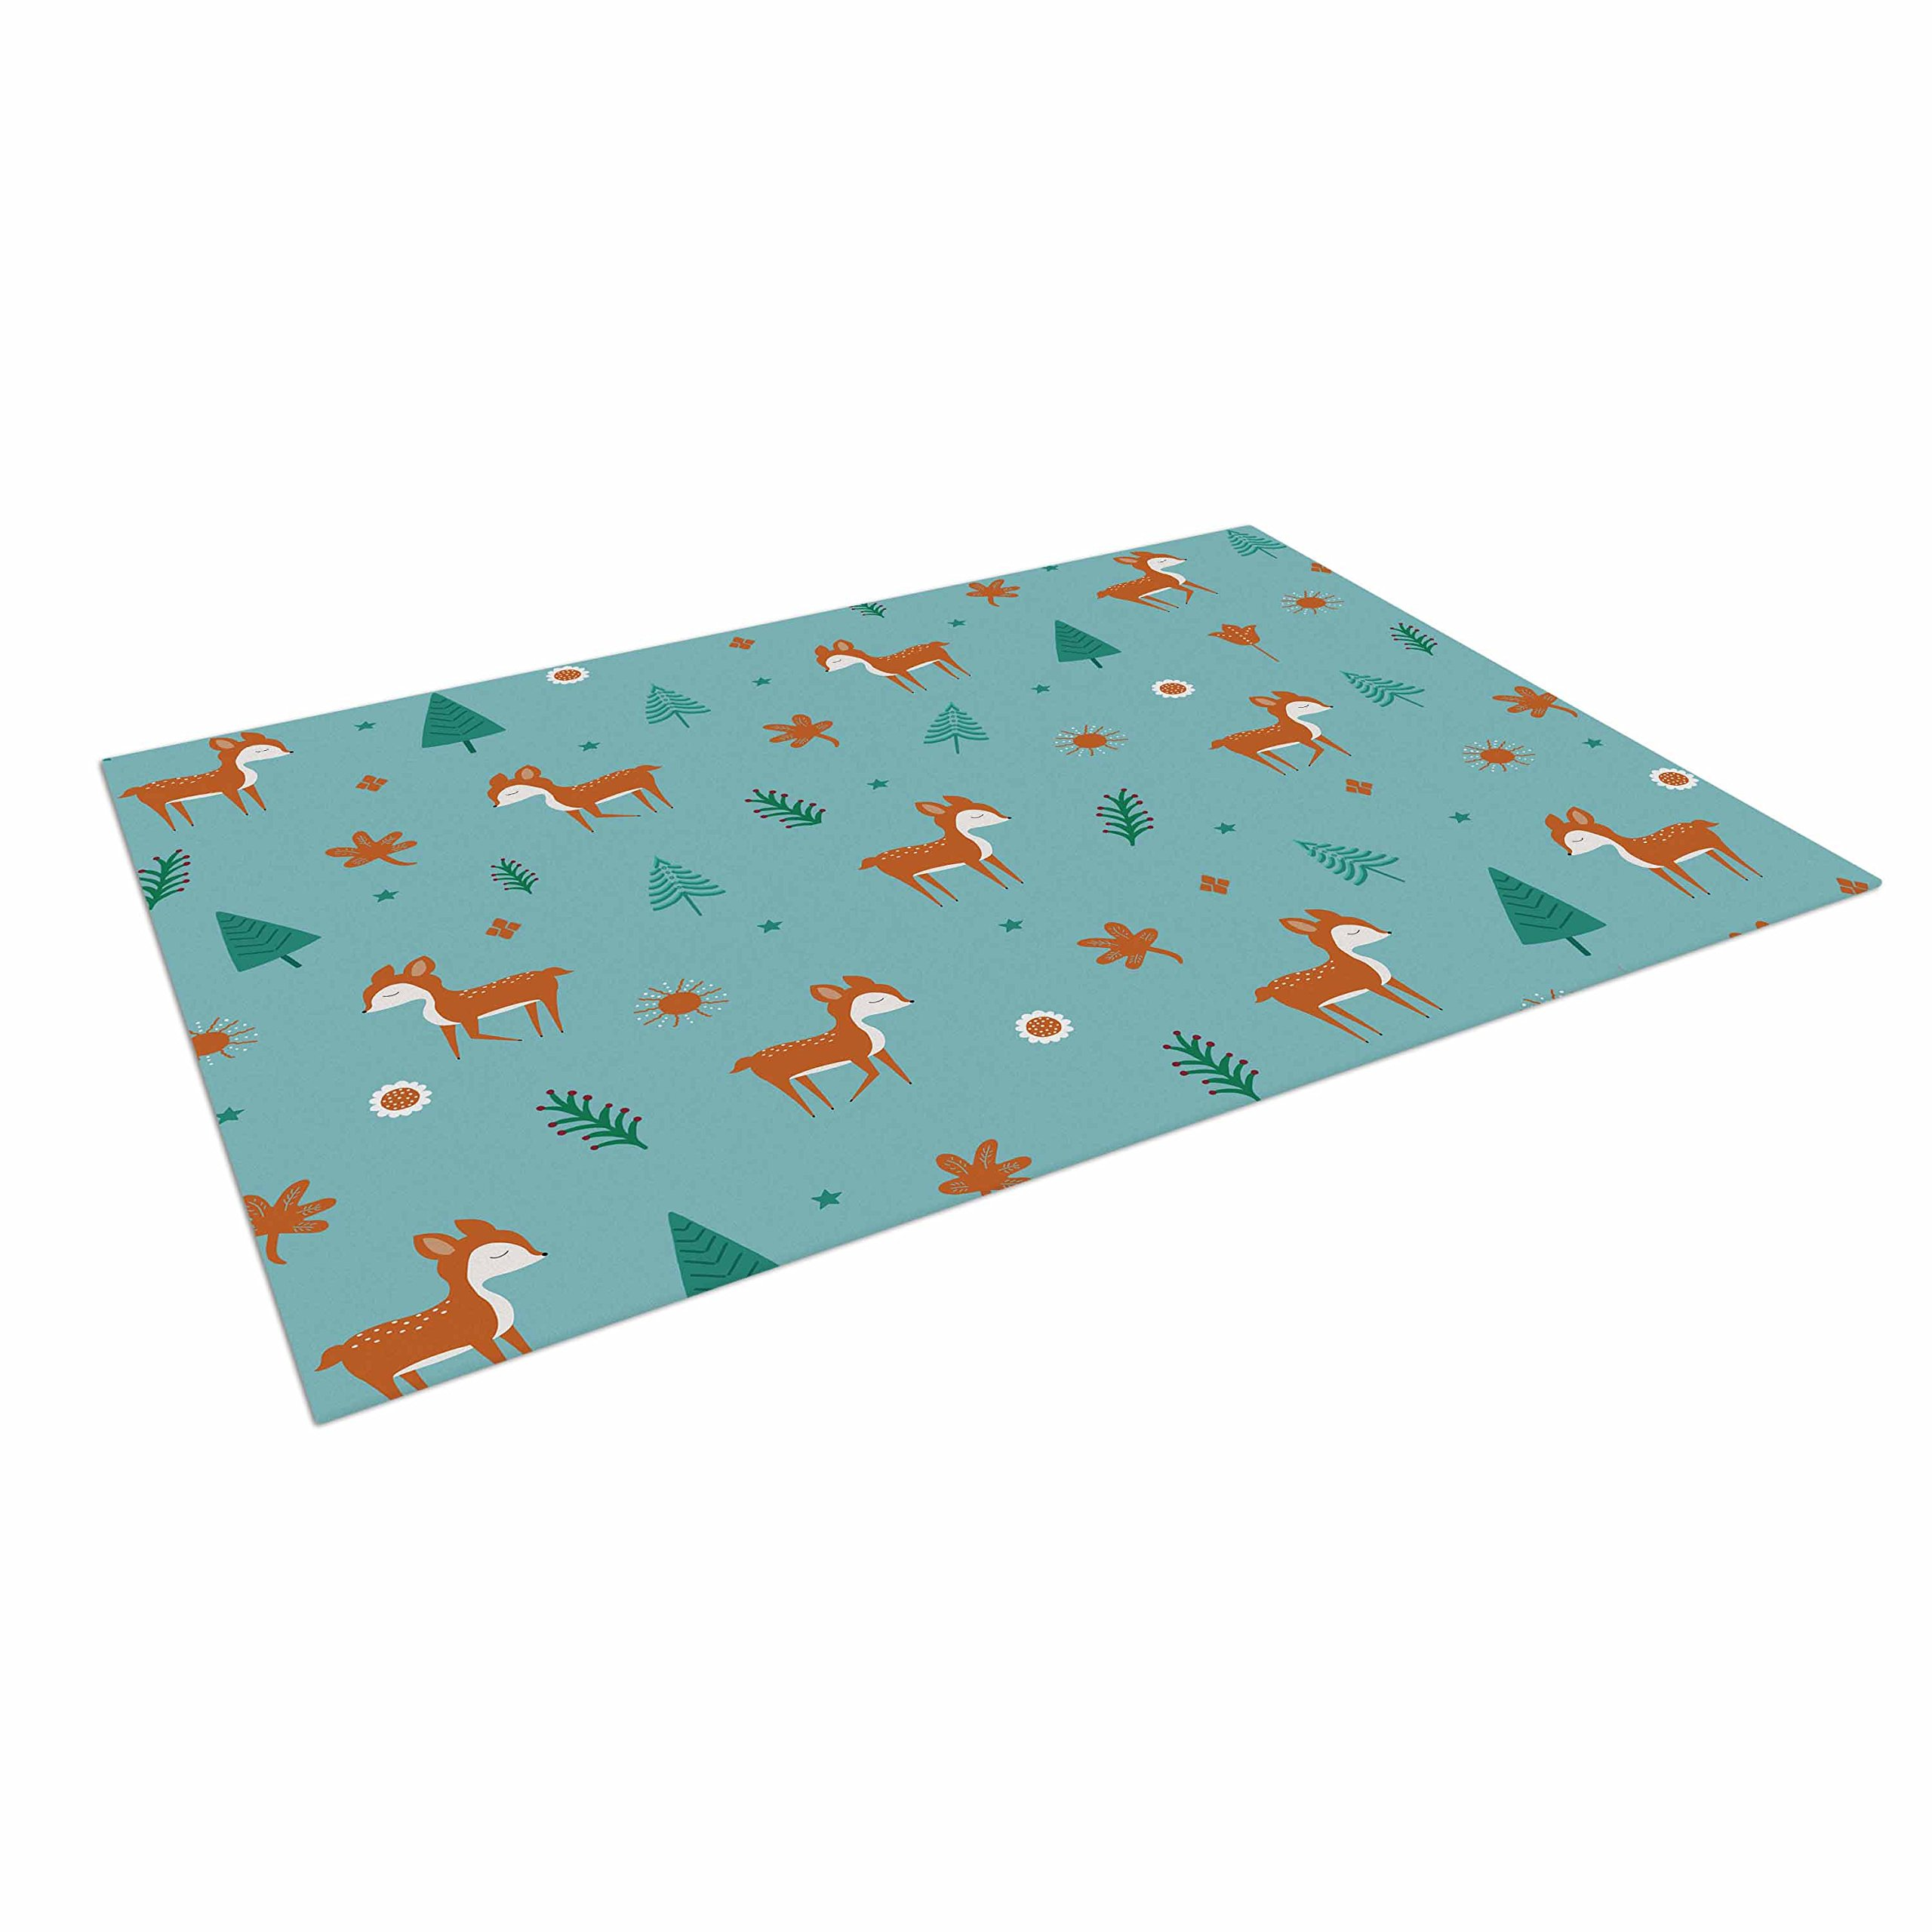 KESS InHouse Cristina bianco Design ''Cute Deer Pattern'' Teal Kids Outdoor Floor Mat, 4' x 5'